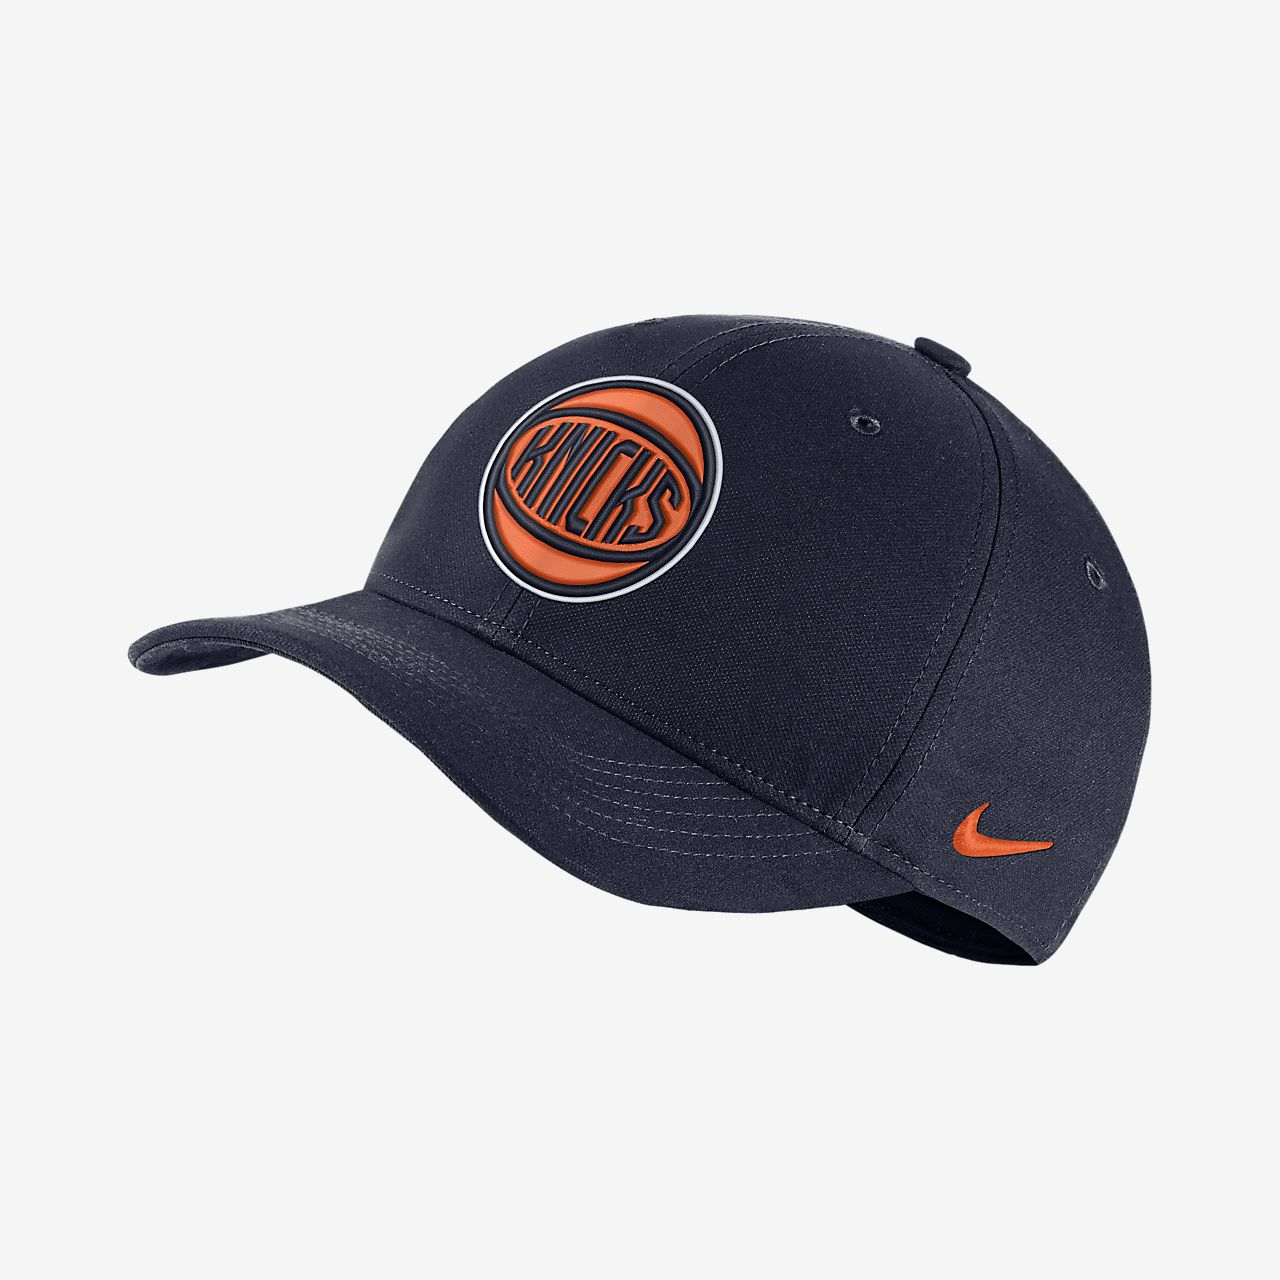 New York Knicks City Edition Nike AeroBill Classic99 NBA-Cap